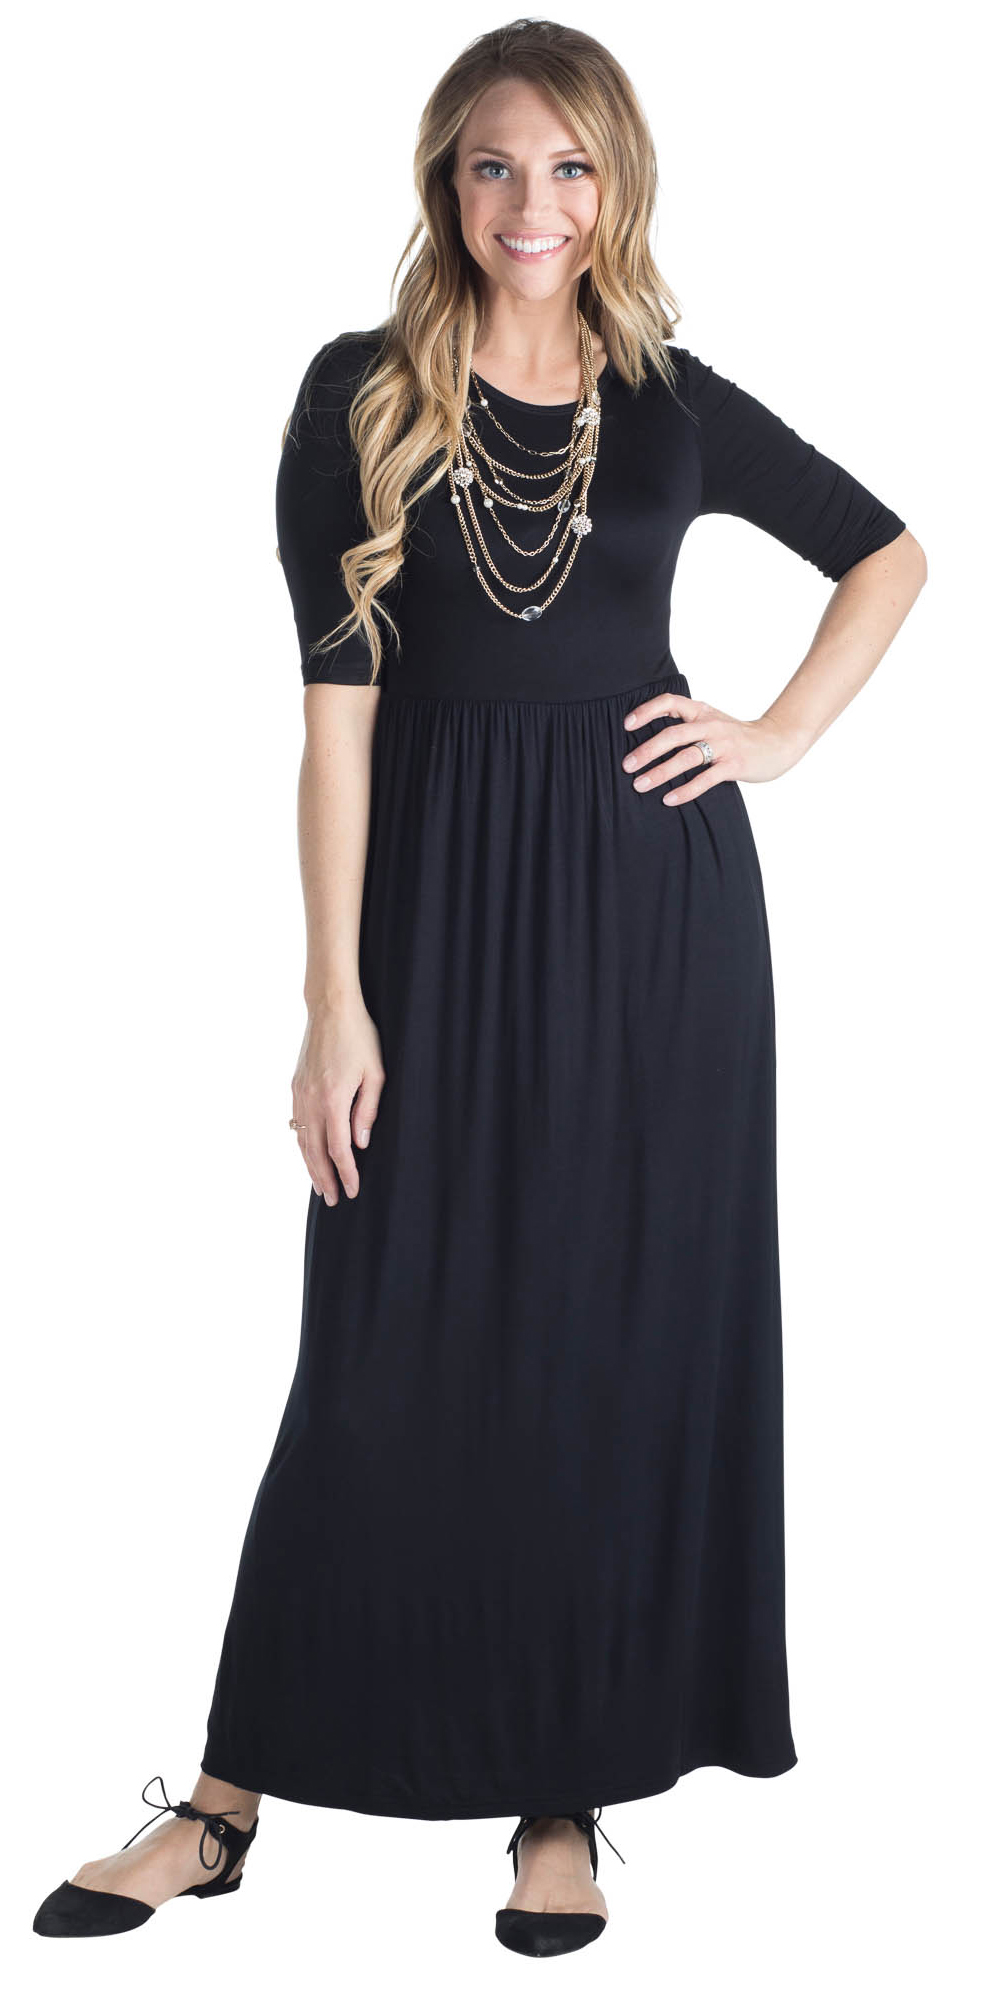 d651e3f18e43 JenClothing Half Sleeve Modest Maxi Dress in Black